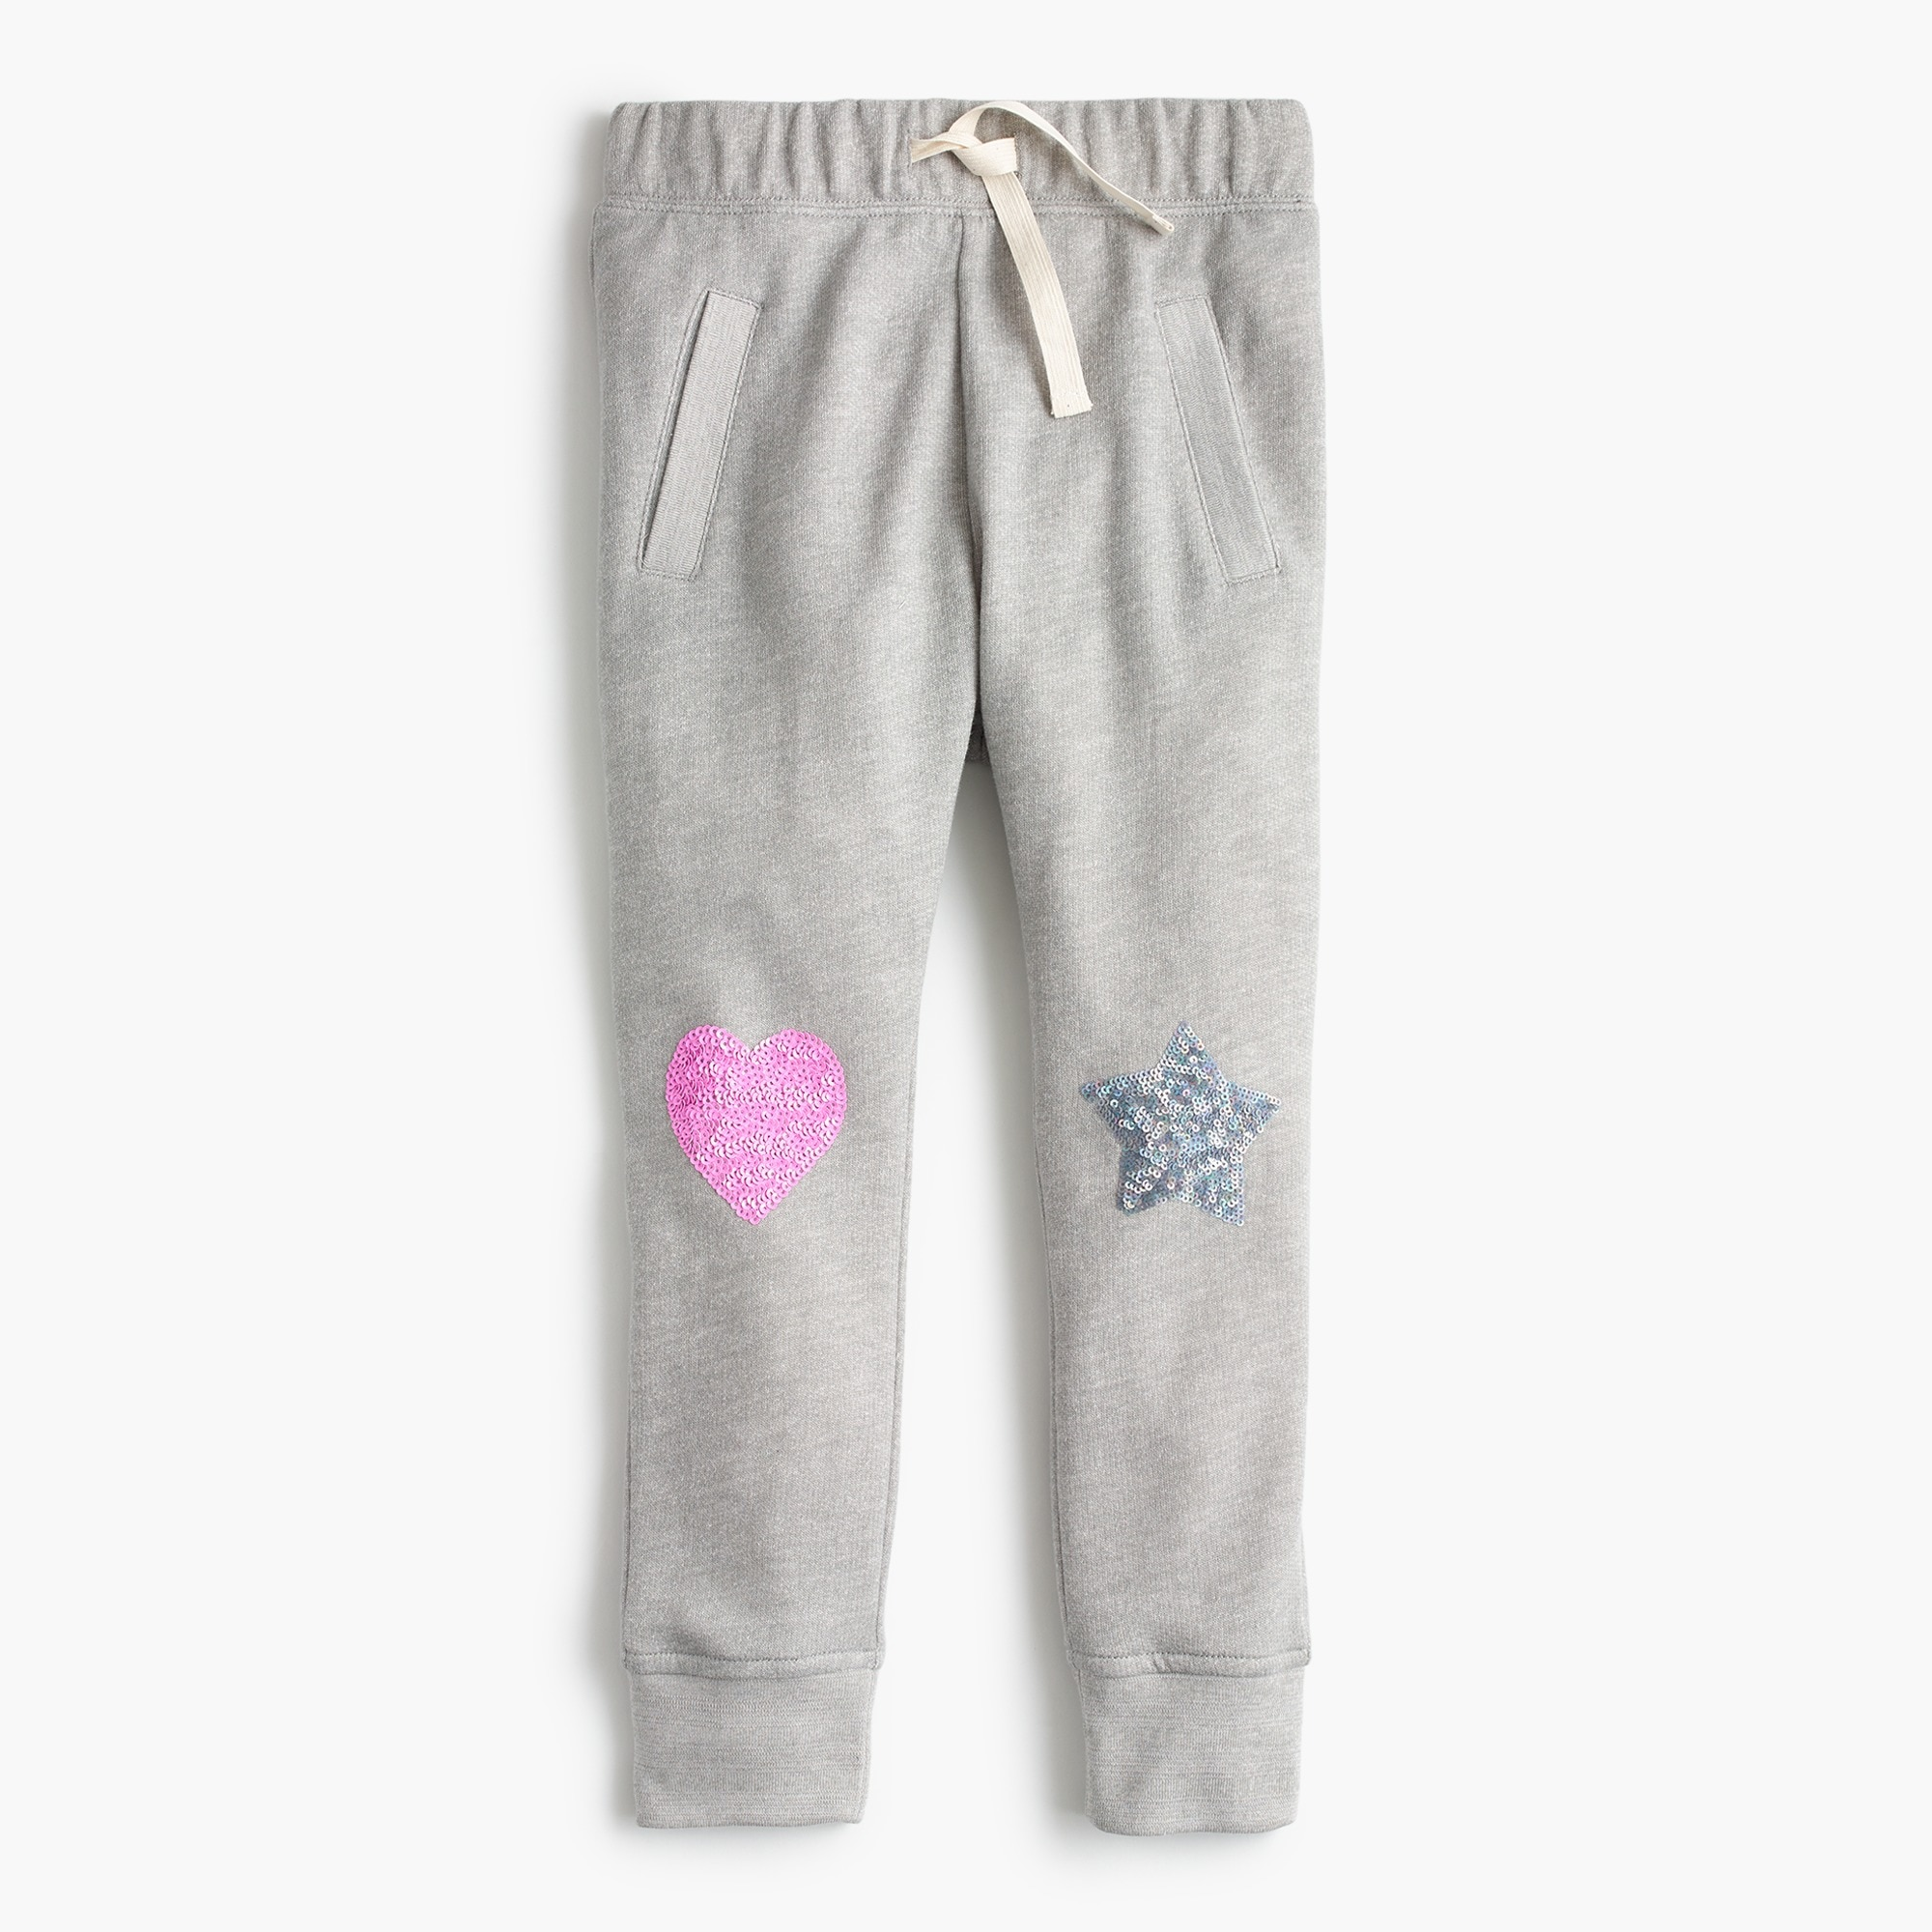 Image 2 for Girls' sequin sweatpant